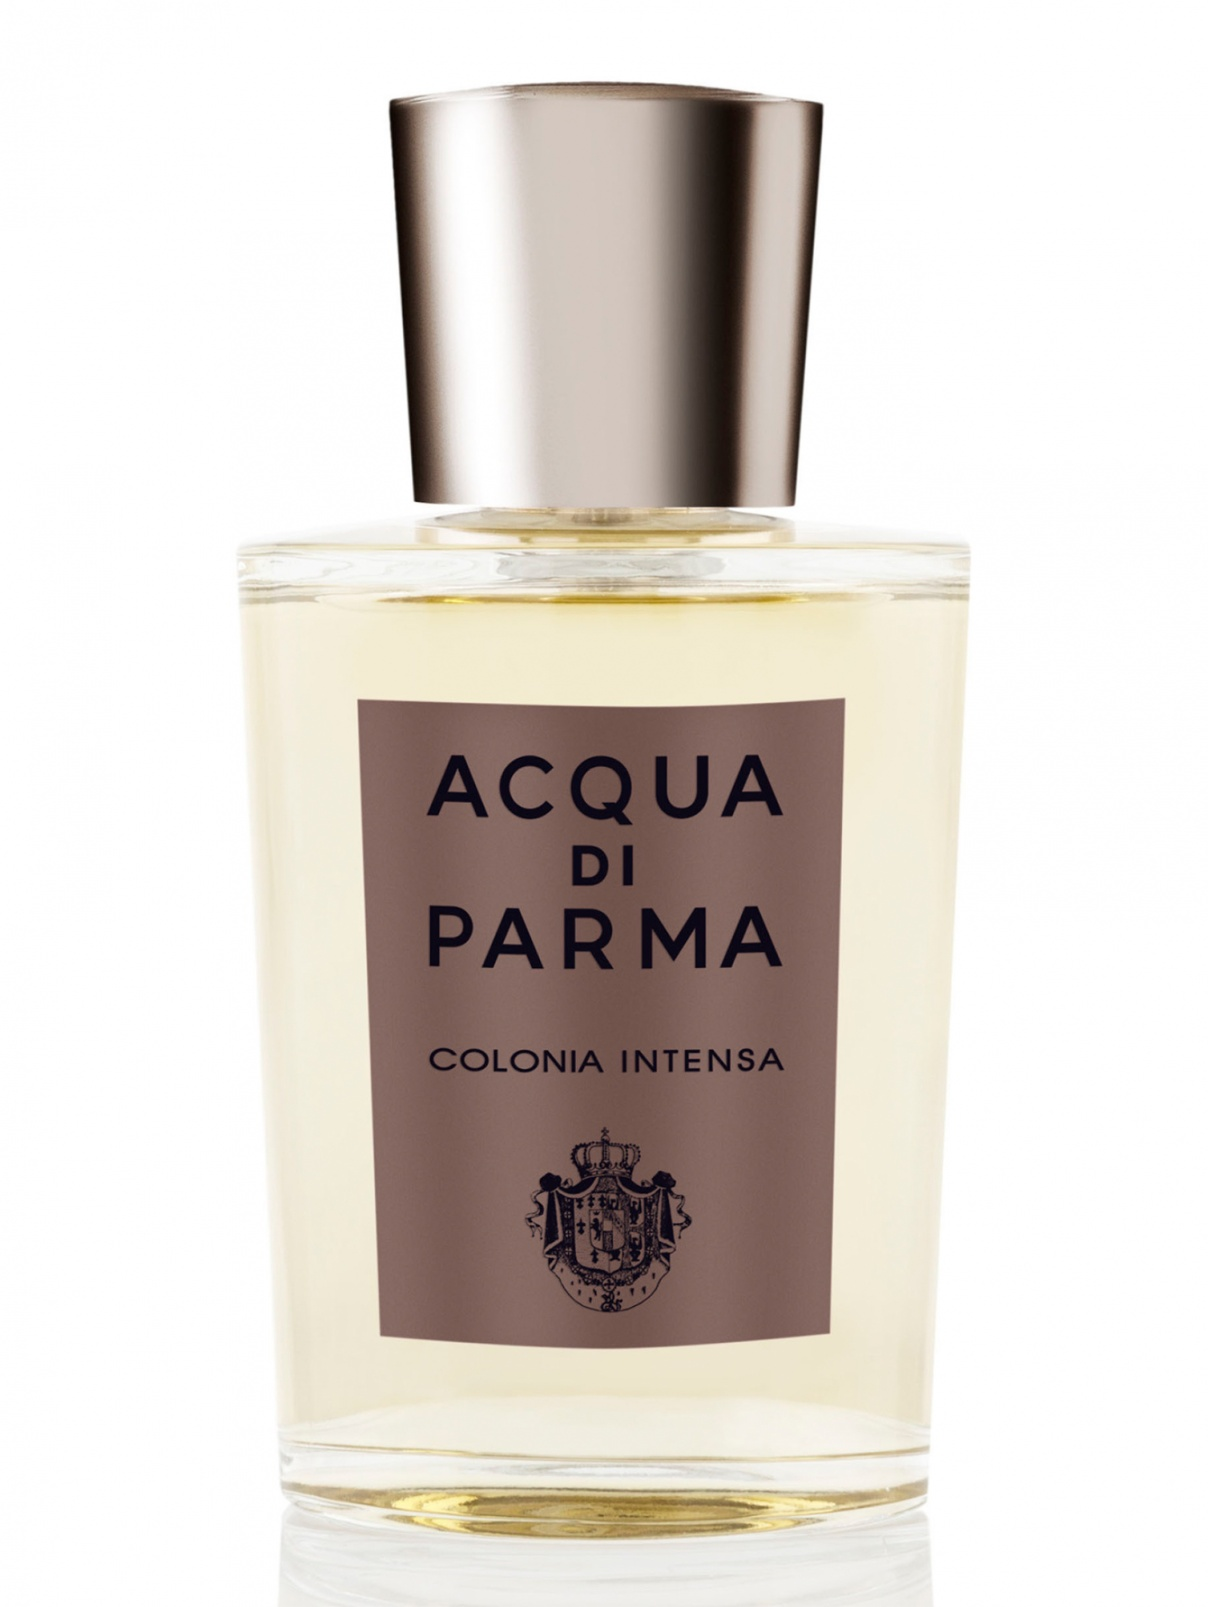 Одеколон - Colonia Intensa, 50ml Acqua di Parma  –  Общий вид